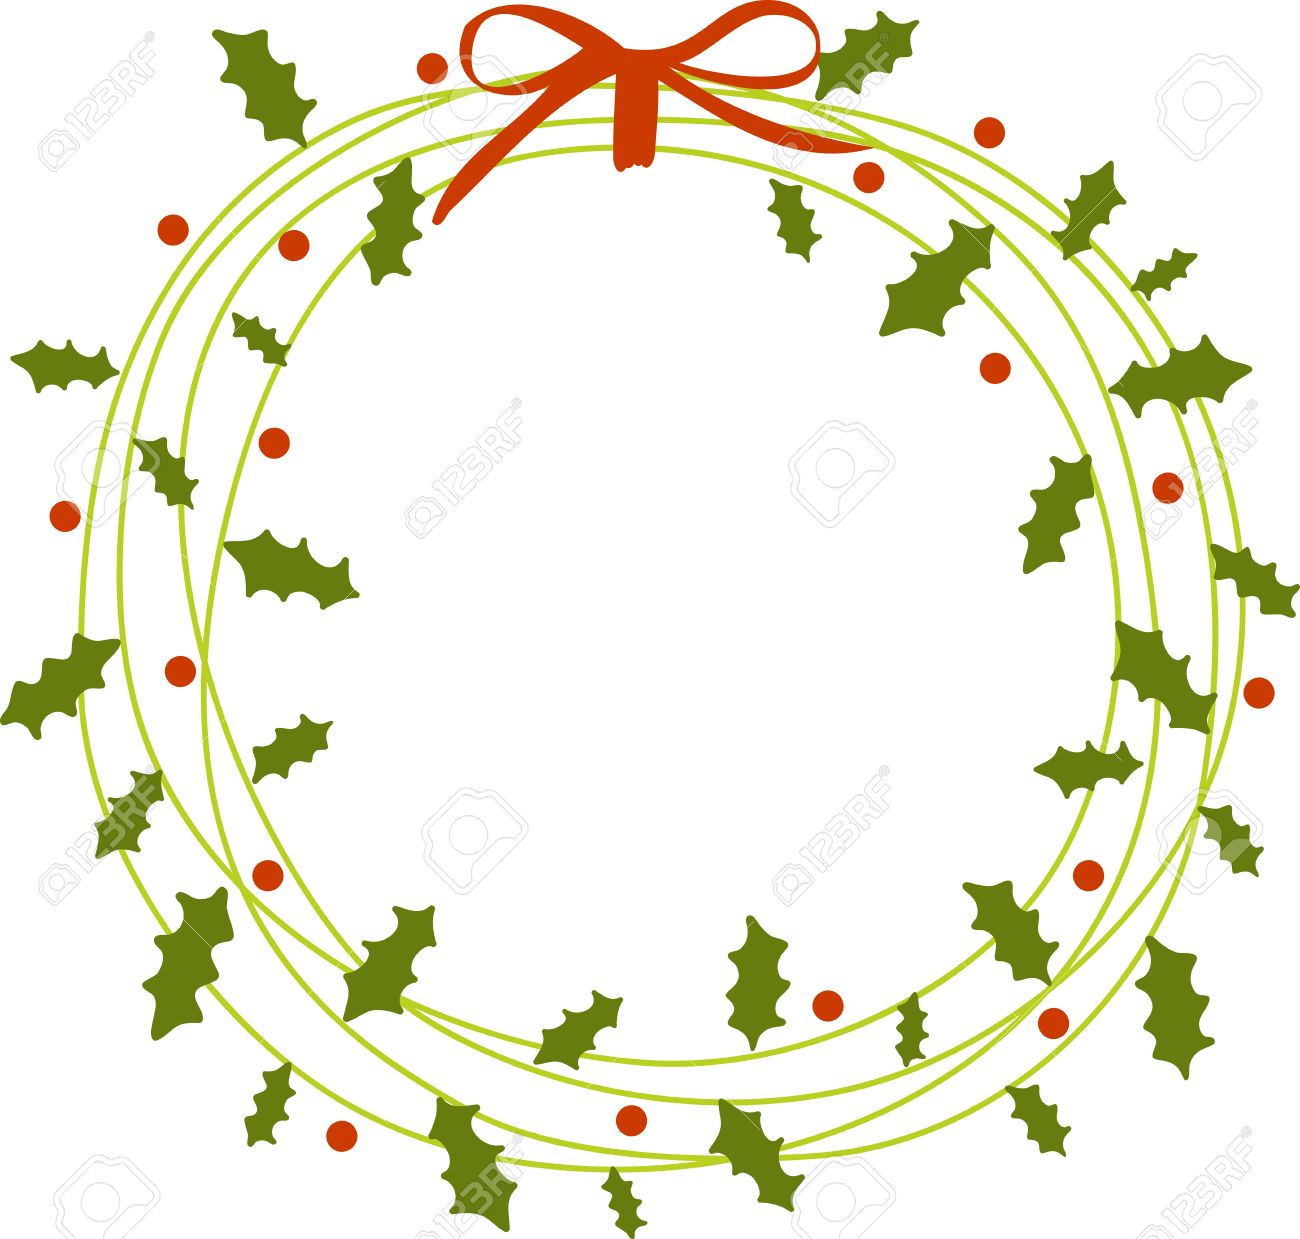 Get In The Christmas Spirit By Hanging A Beautiful Wreath On ...